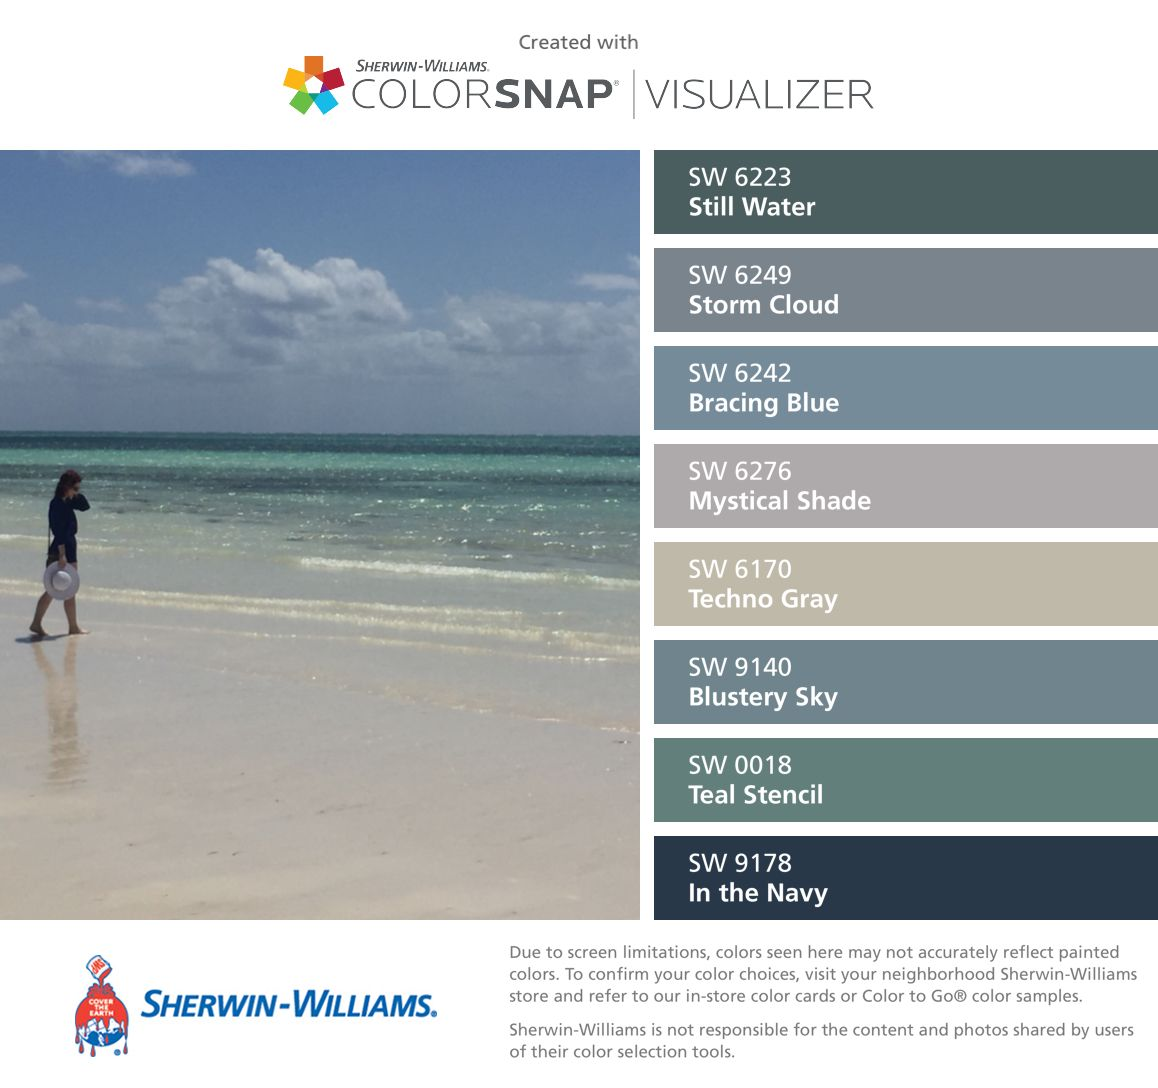 Sherwin williams paint colors sherwin williams 6249 storm cloud - I Found These Colors With Colorsnap Visualizer For Iphone By Sherwin Williams Still